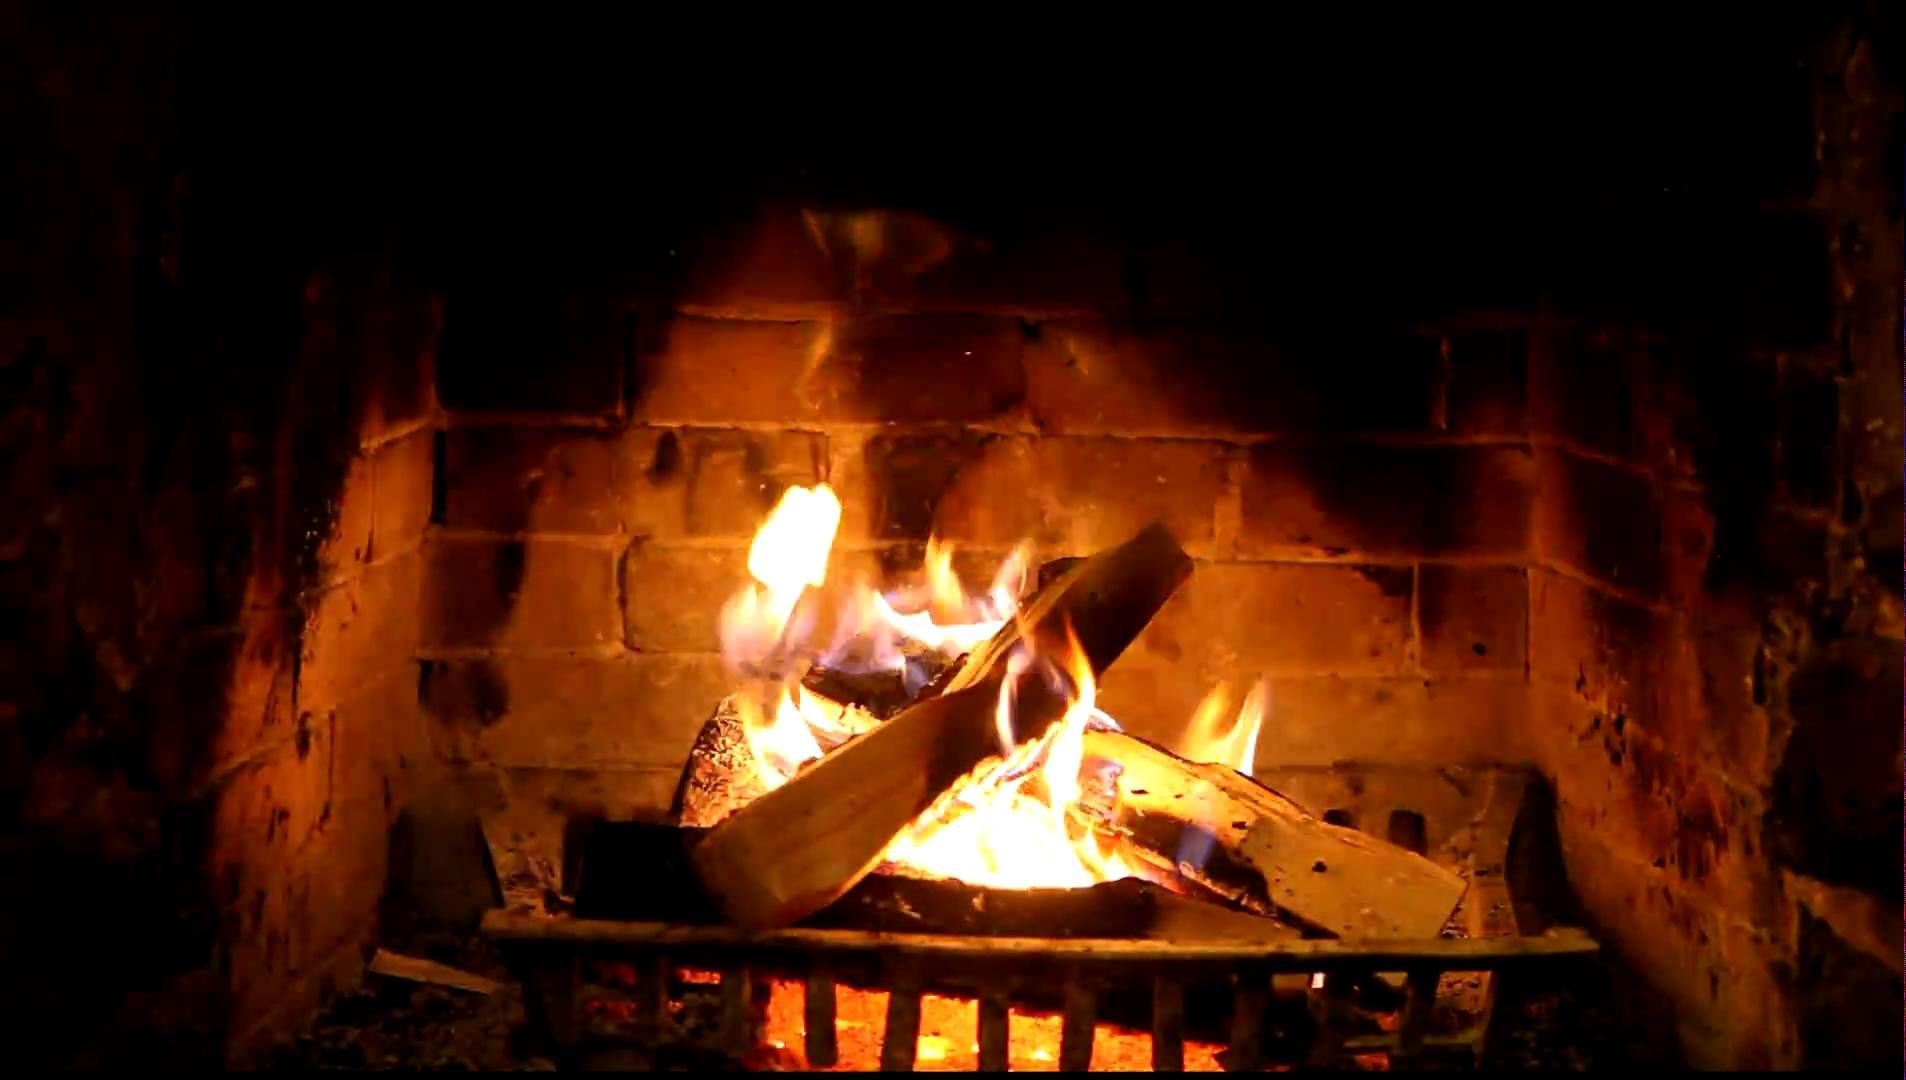 Virtual Fireplace Unique Crackling Fireplace In High Def 1080p